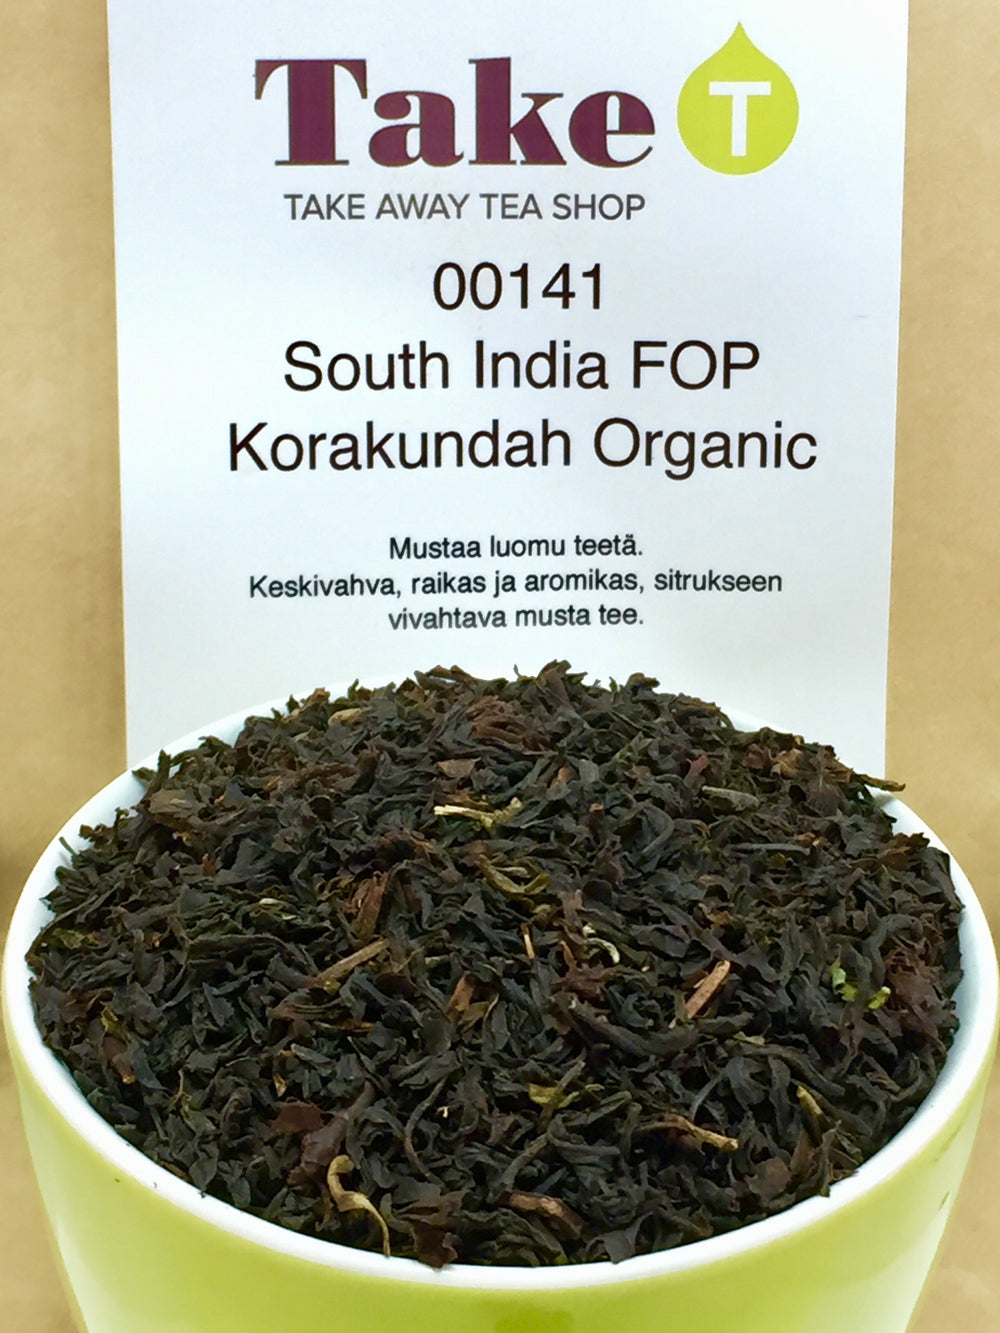 South Indian FOP Korakundah Organic